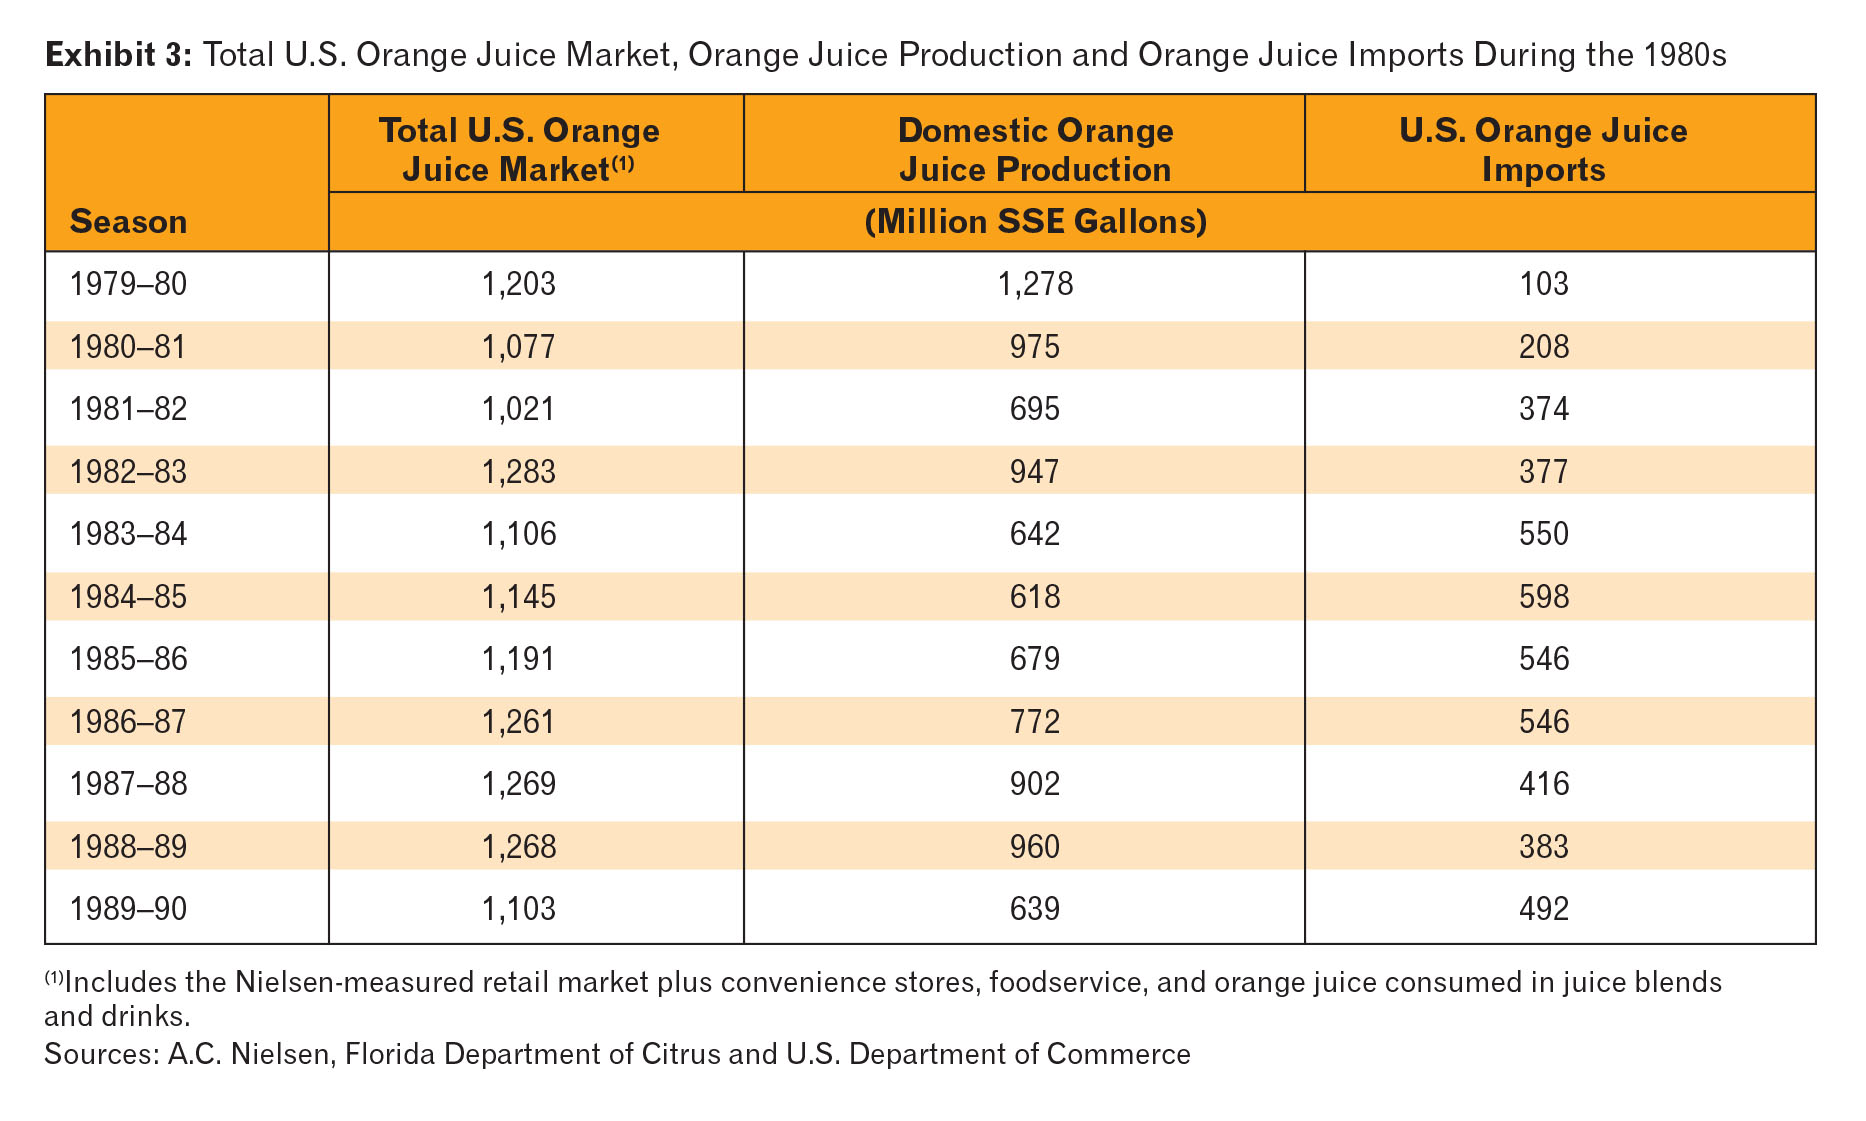 What Is Happening to the Orange Juice Market?